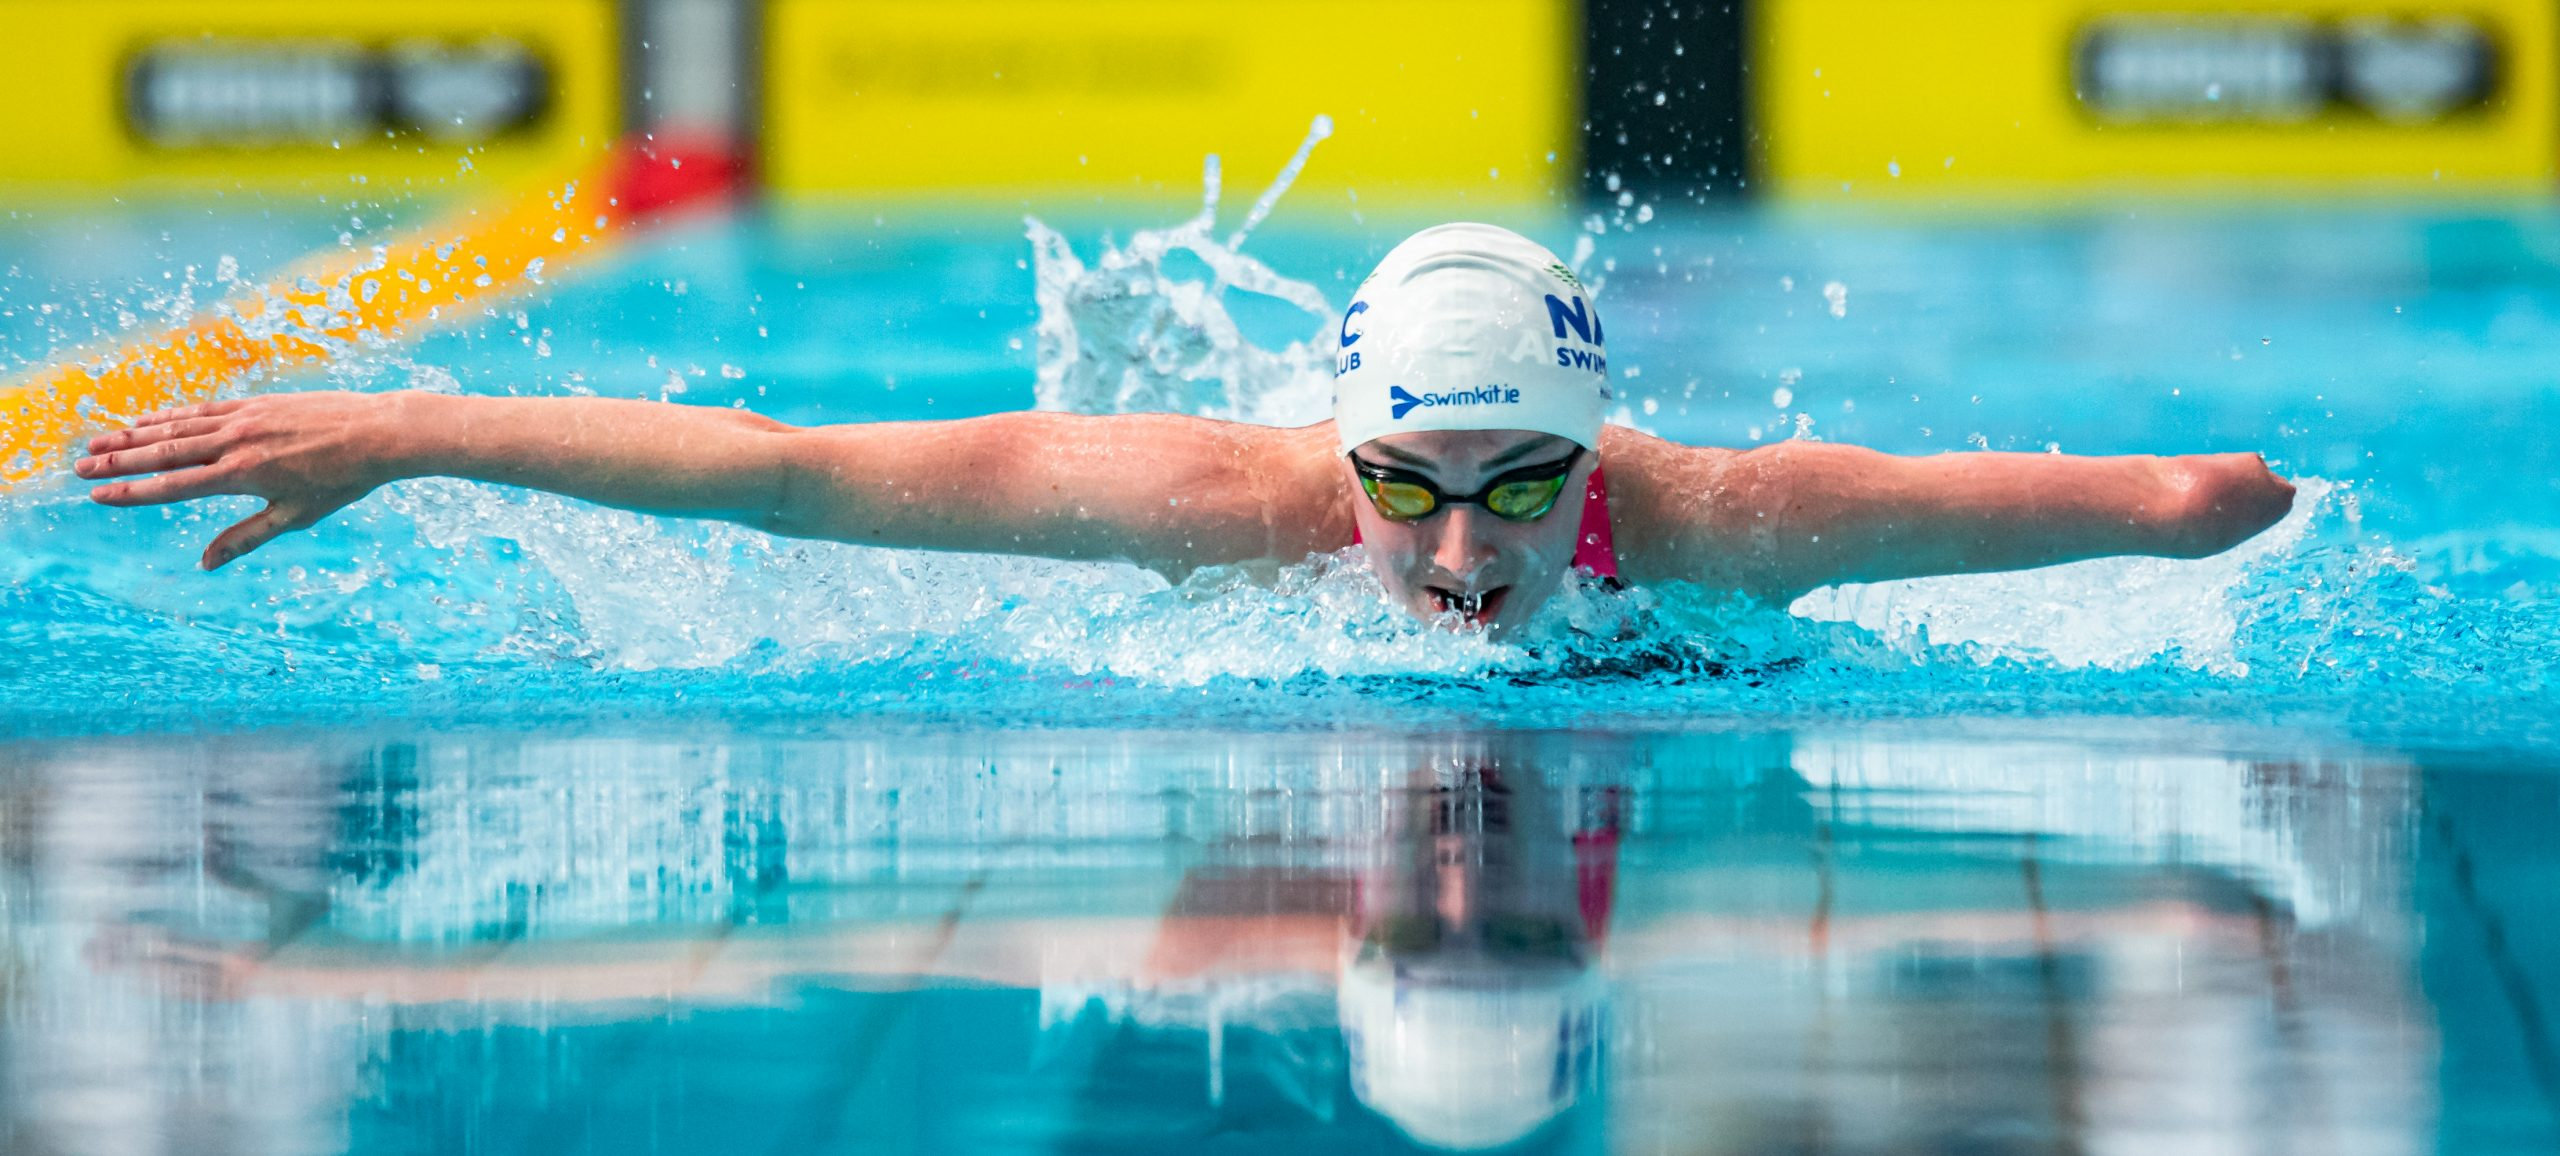 Ellen Keane competes in Day 3 of the Time Trials